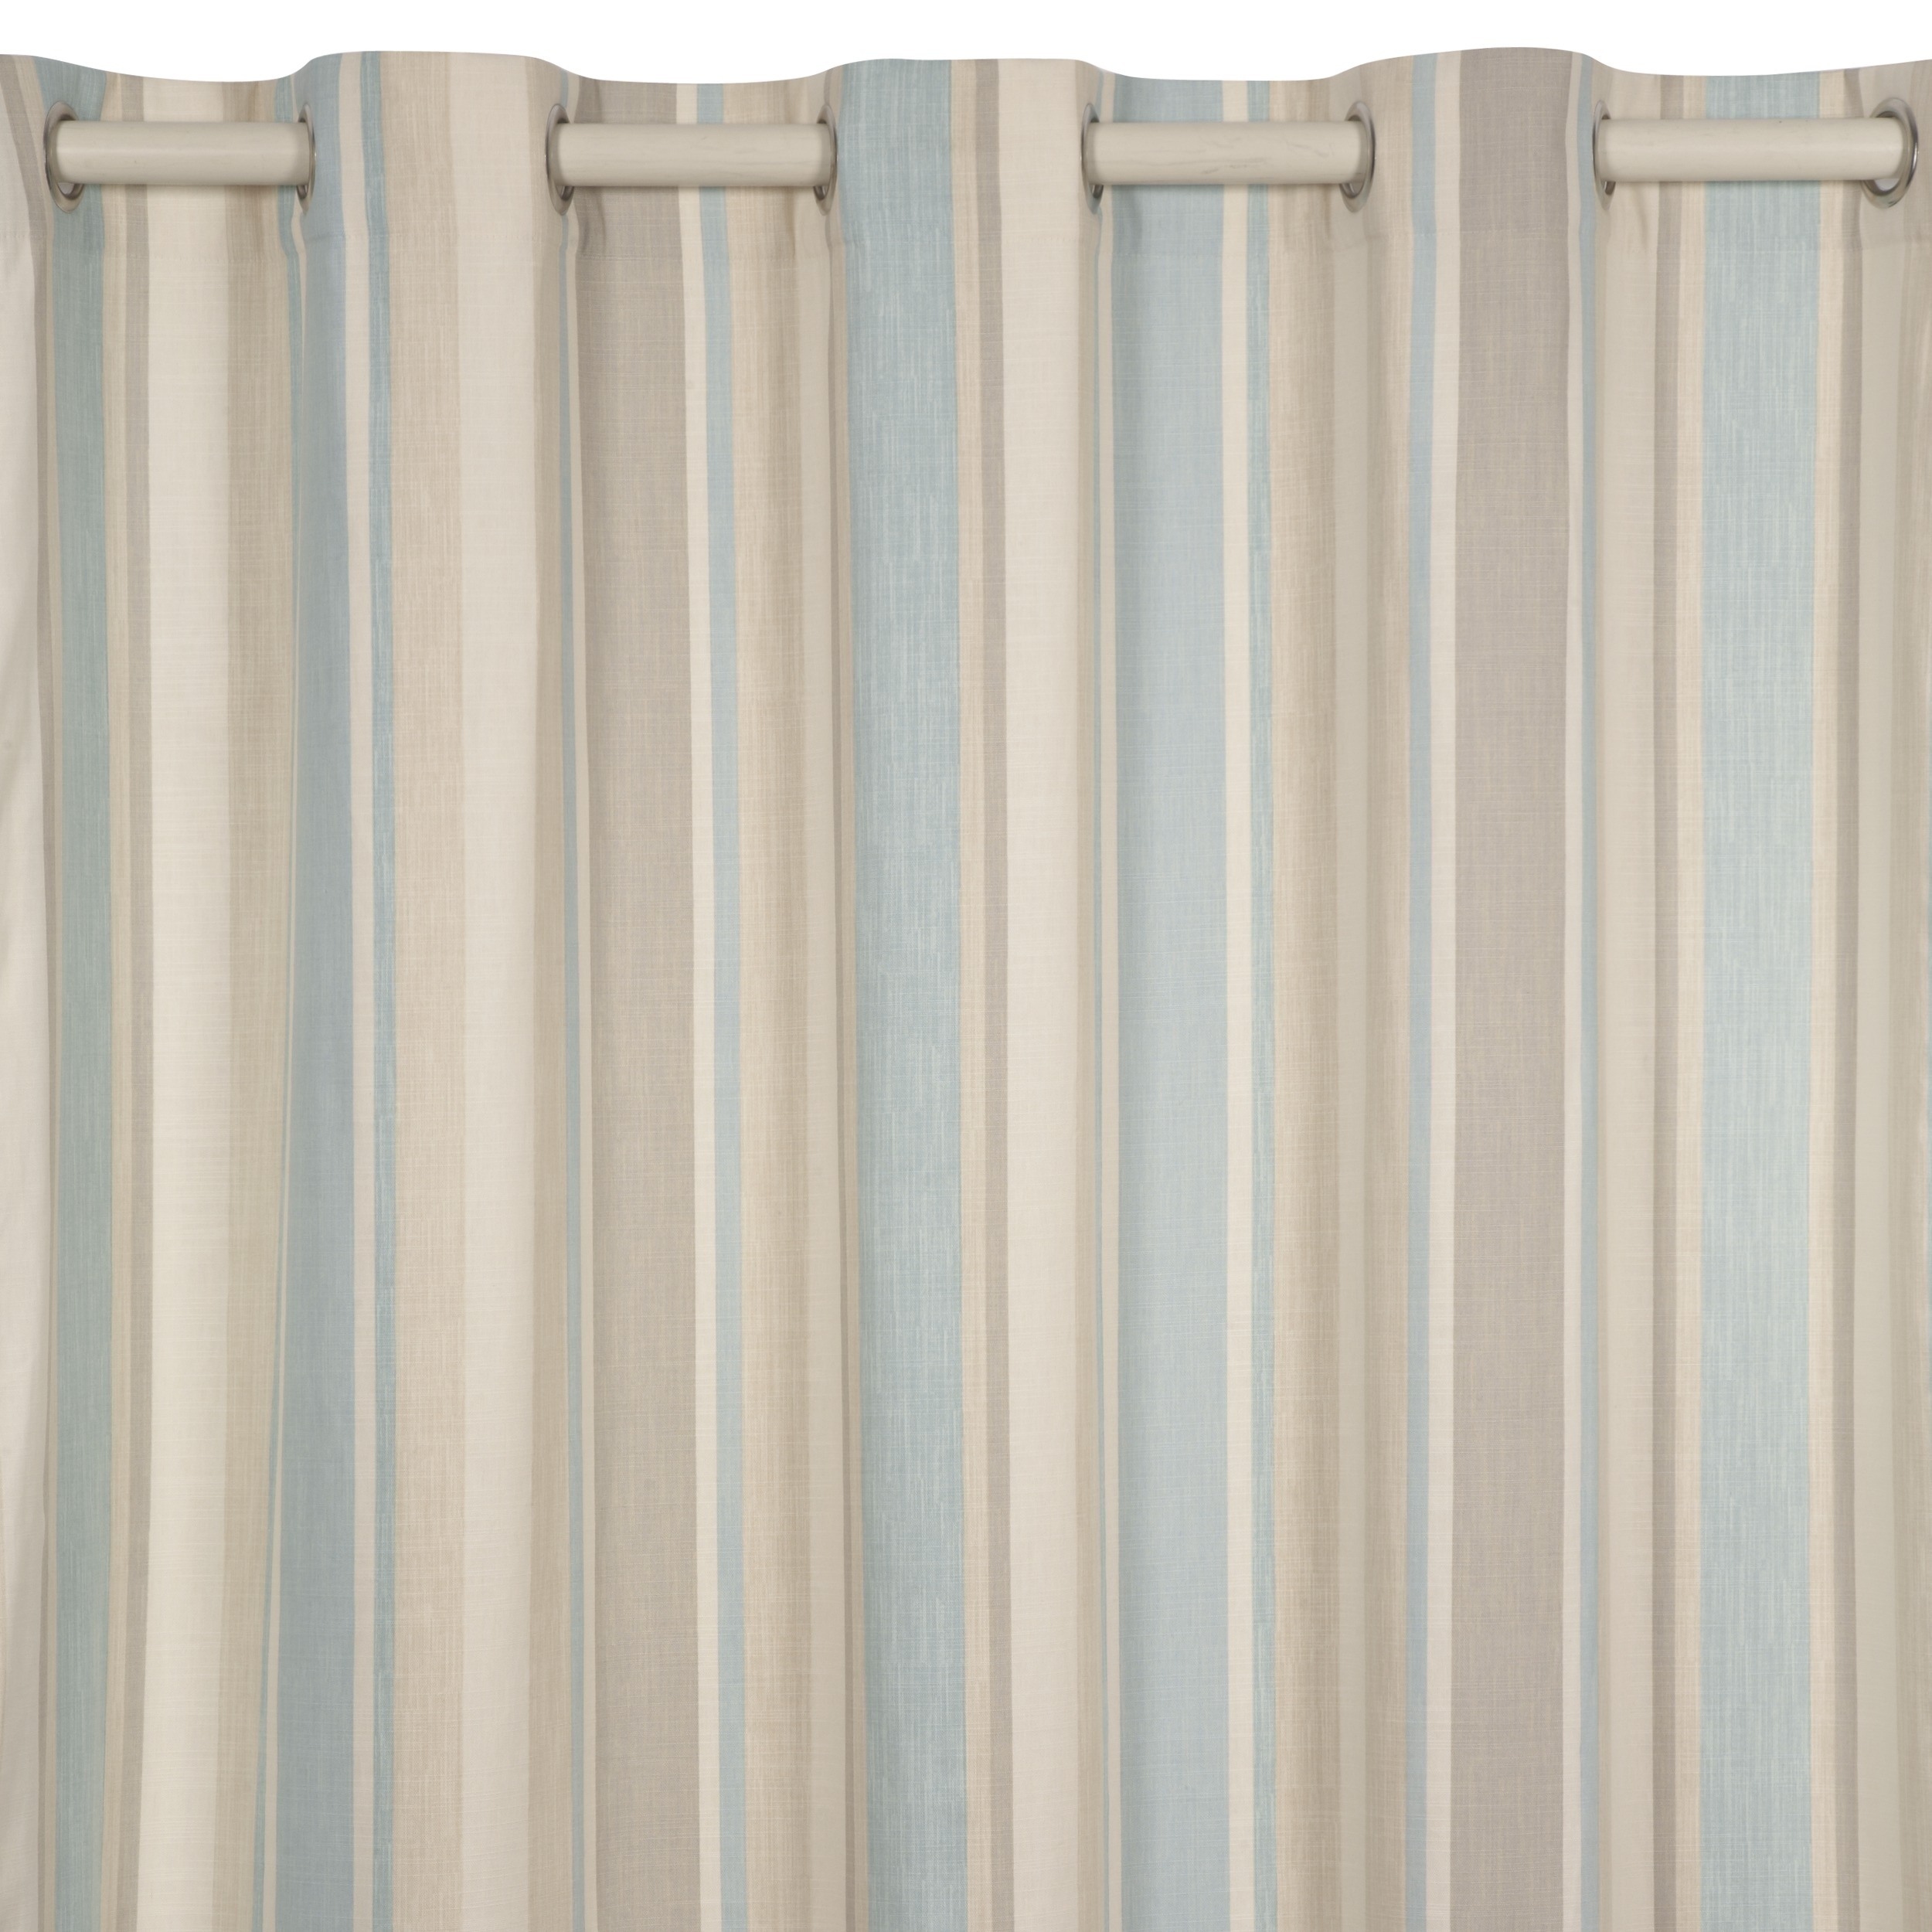 Awning Stripe Duck Egg Eyelet Ready Made Curtains At Laura Ashley With Duck Egg Blue Striped Curtains (Image 3 of 15)